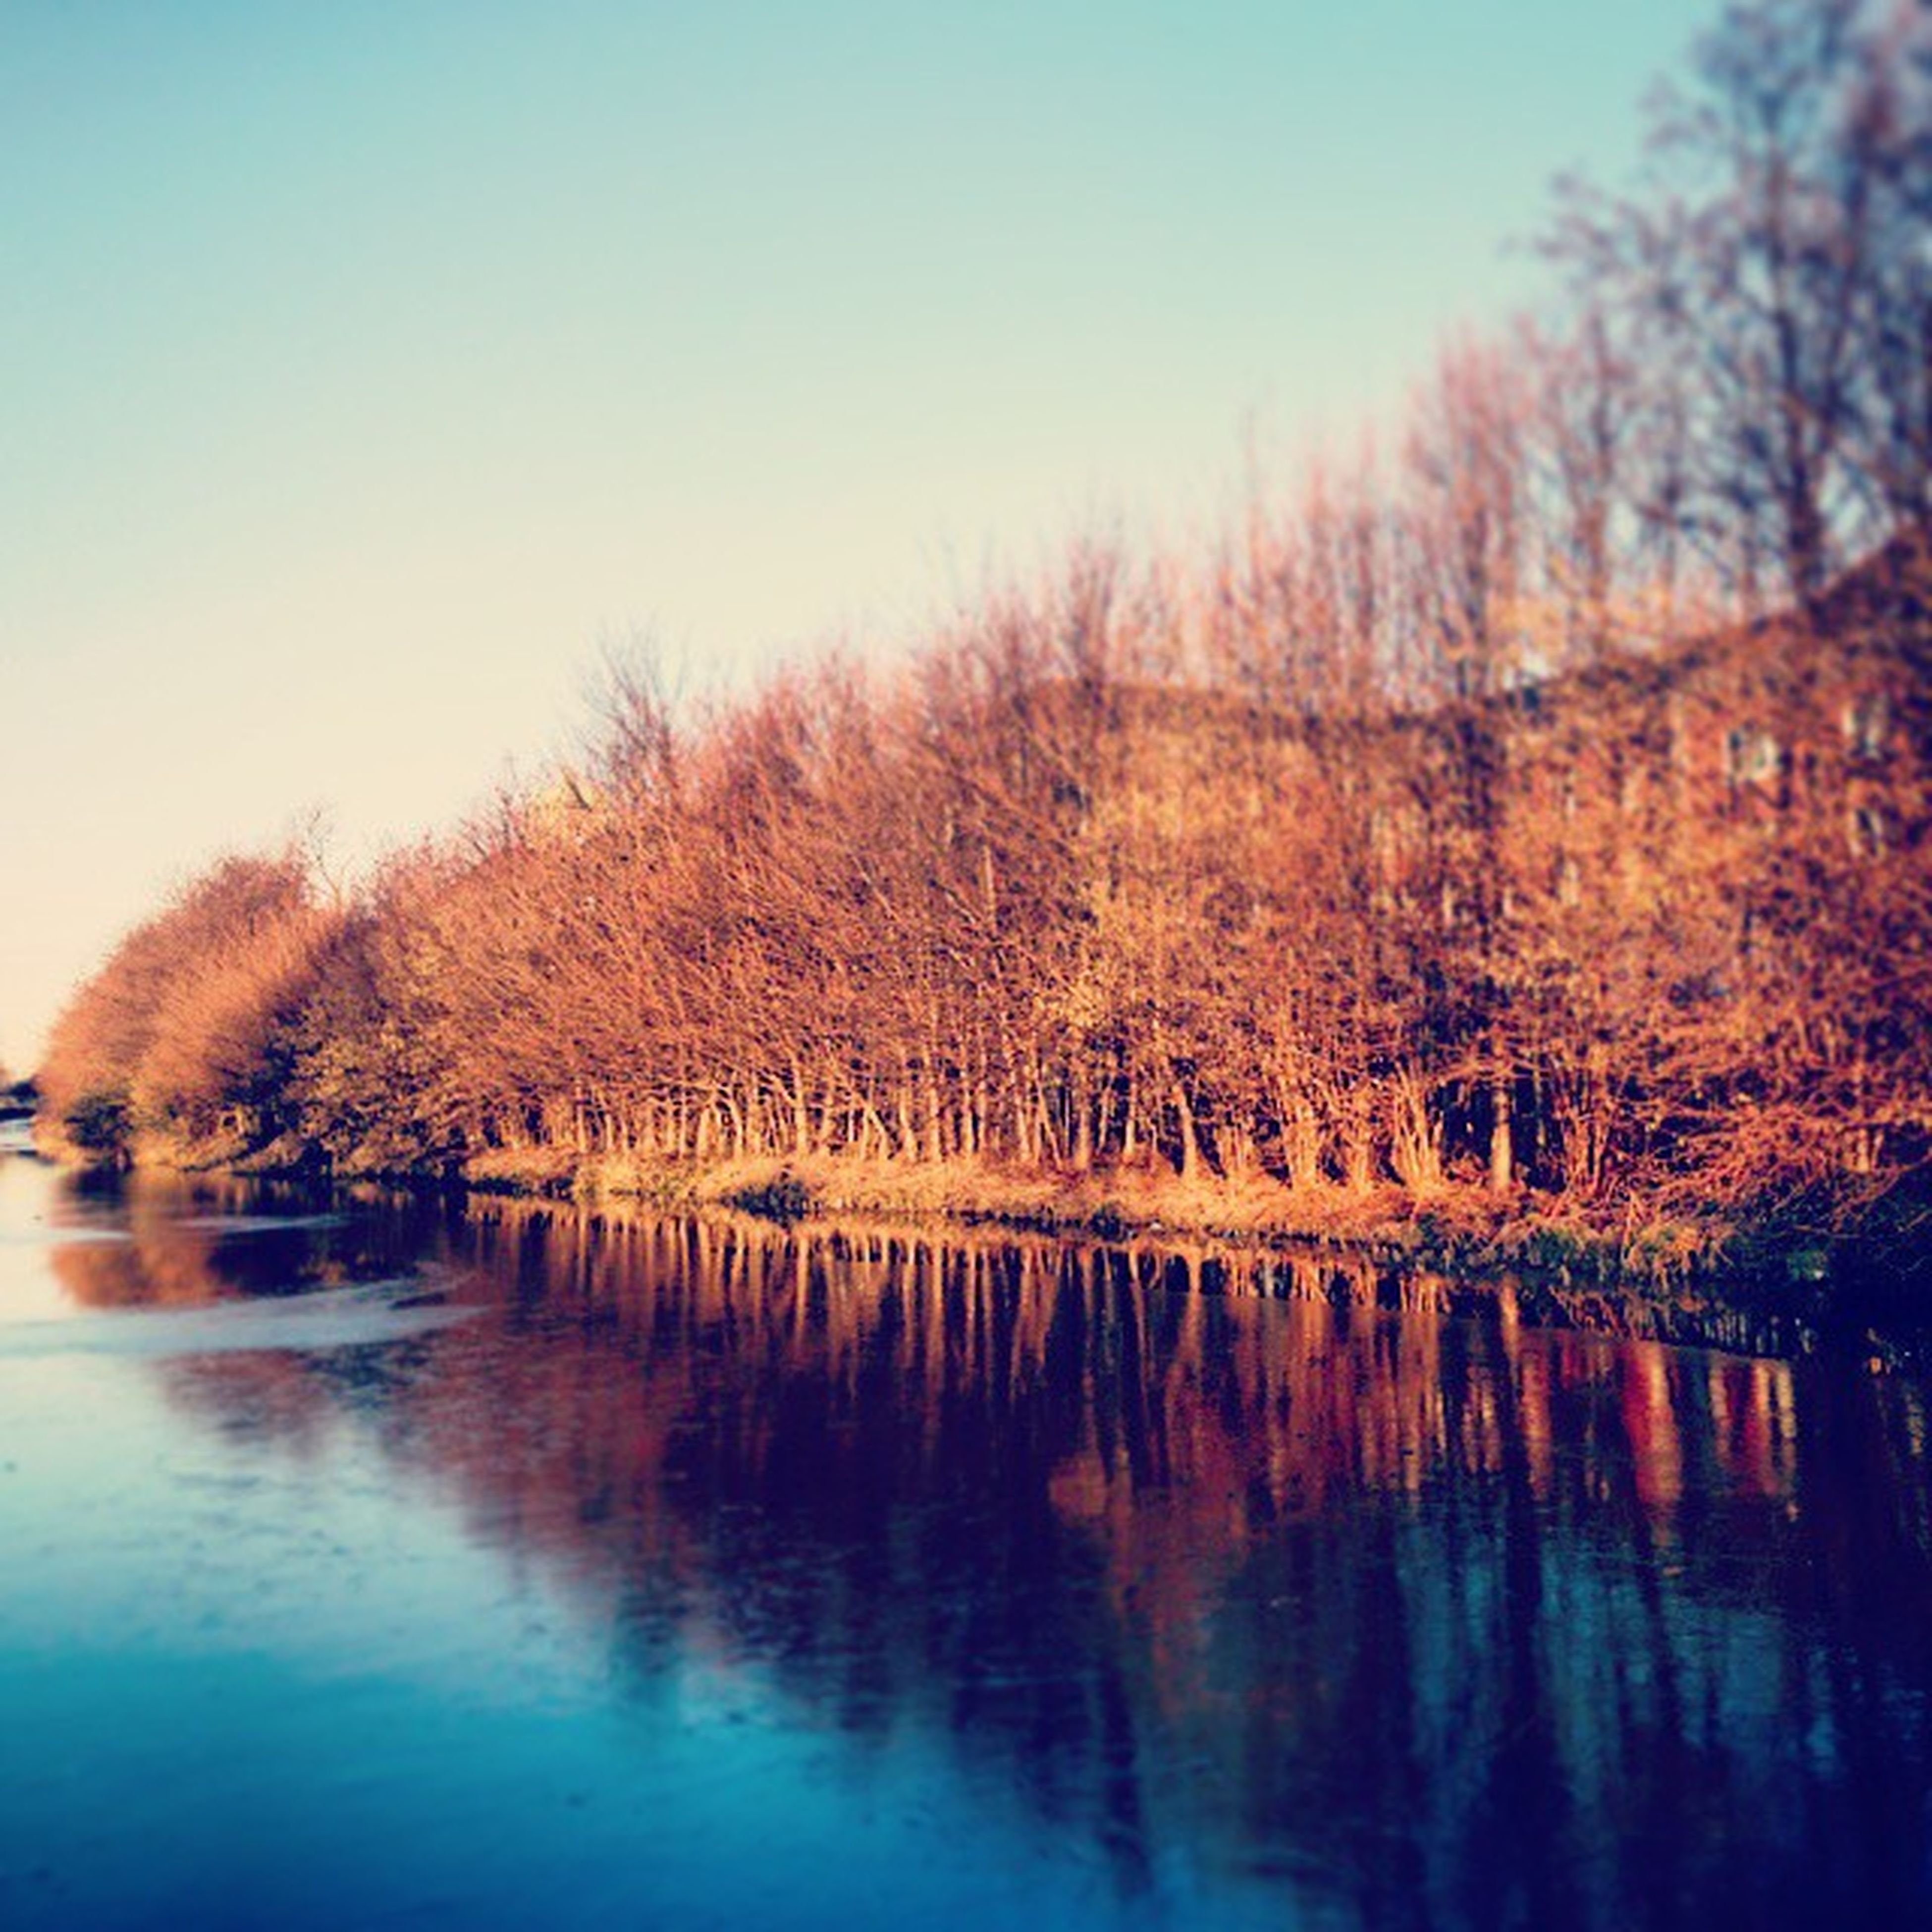 tree, water, tranquil scene, tranquility, clear sky, reflection, lake, scenics, beauty in nature, waterfront, nature, season, river, autumn, idyllic, bare tree, copy space, standing water, non-urban scene, outdoors